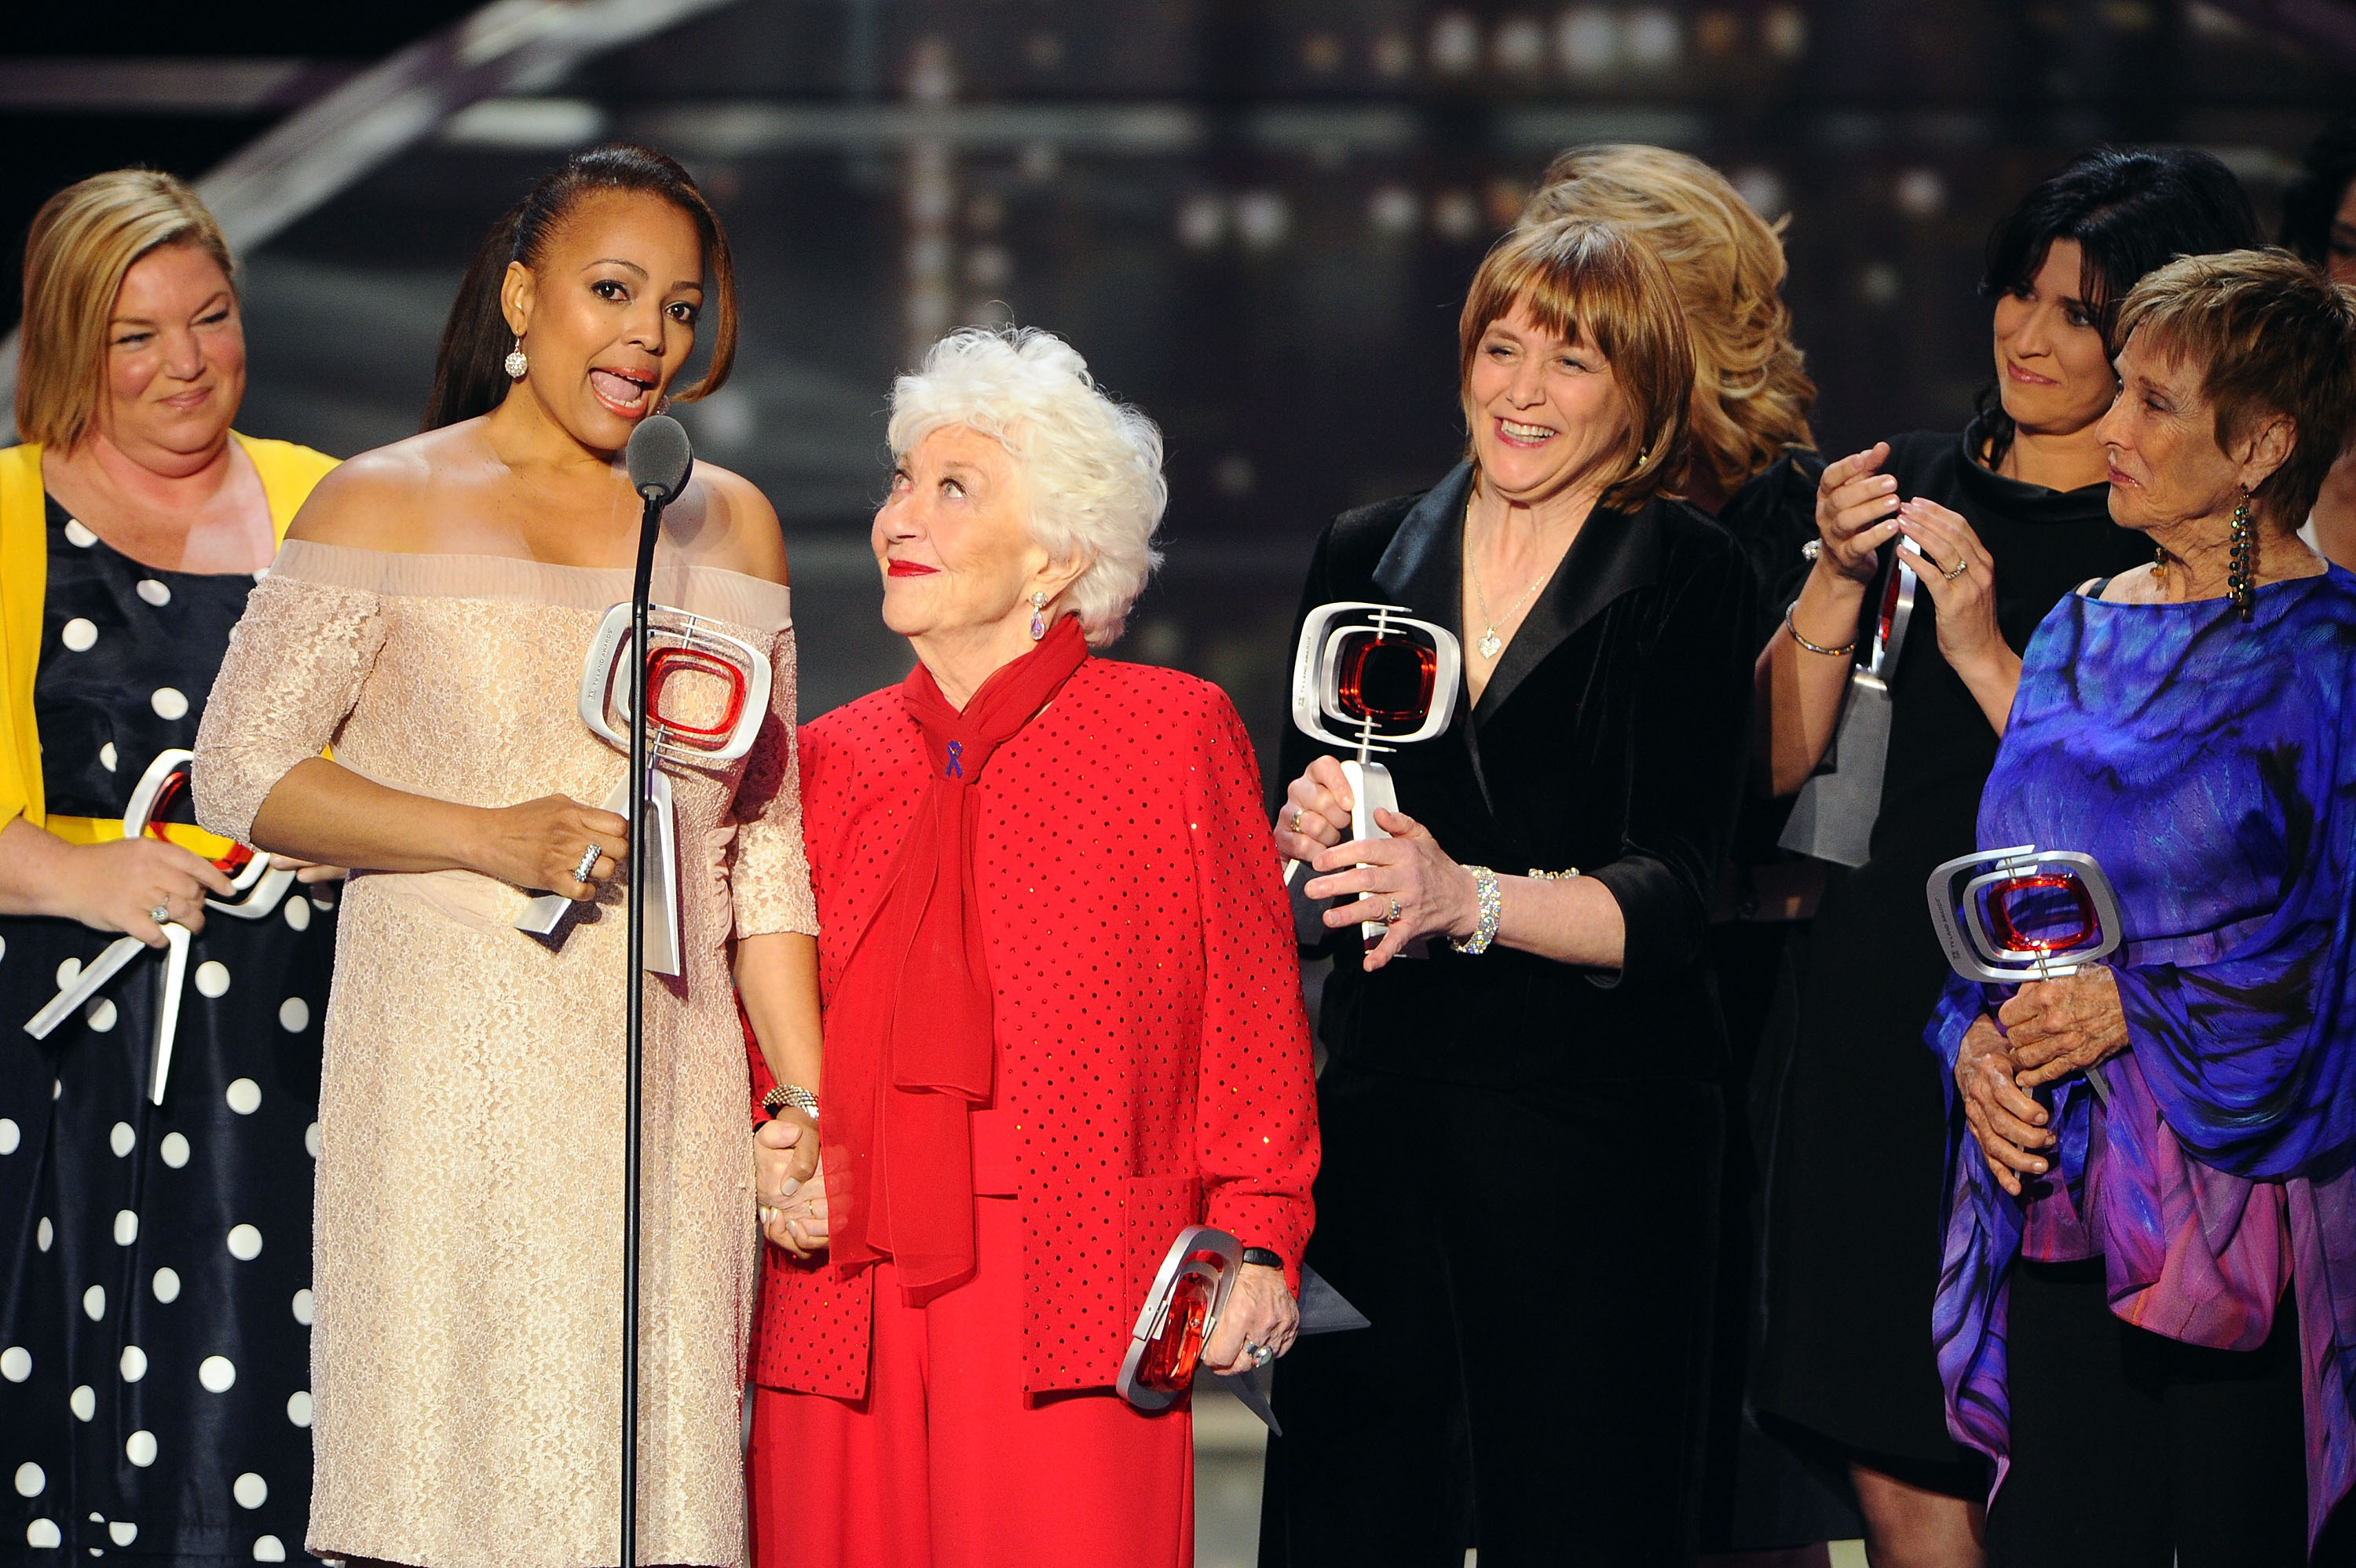 The cast of 'The Facts Of Life' (L-R) Mindy Cohn, Kim Fields, Charlotte Rae, Geri Jewell, Lisa Whelchel, Nancy McKeon, and Cloris Leachman accept the Pop Culture Award onstage at the 9th Annual TV Land Awards at the Javits Center on April 10, 2011 in New York City.